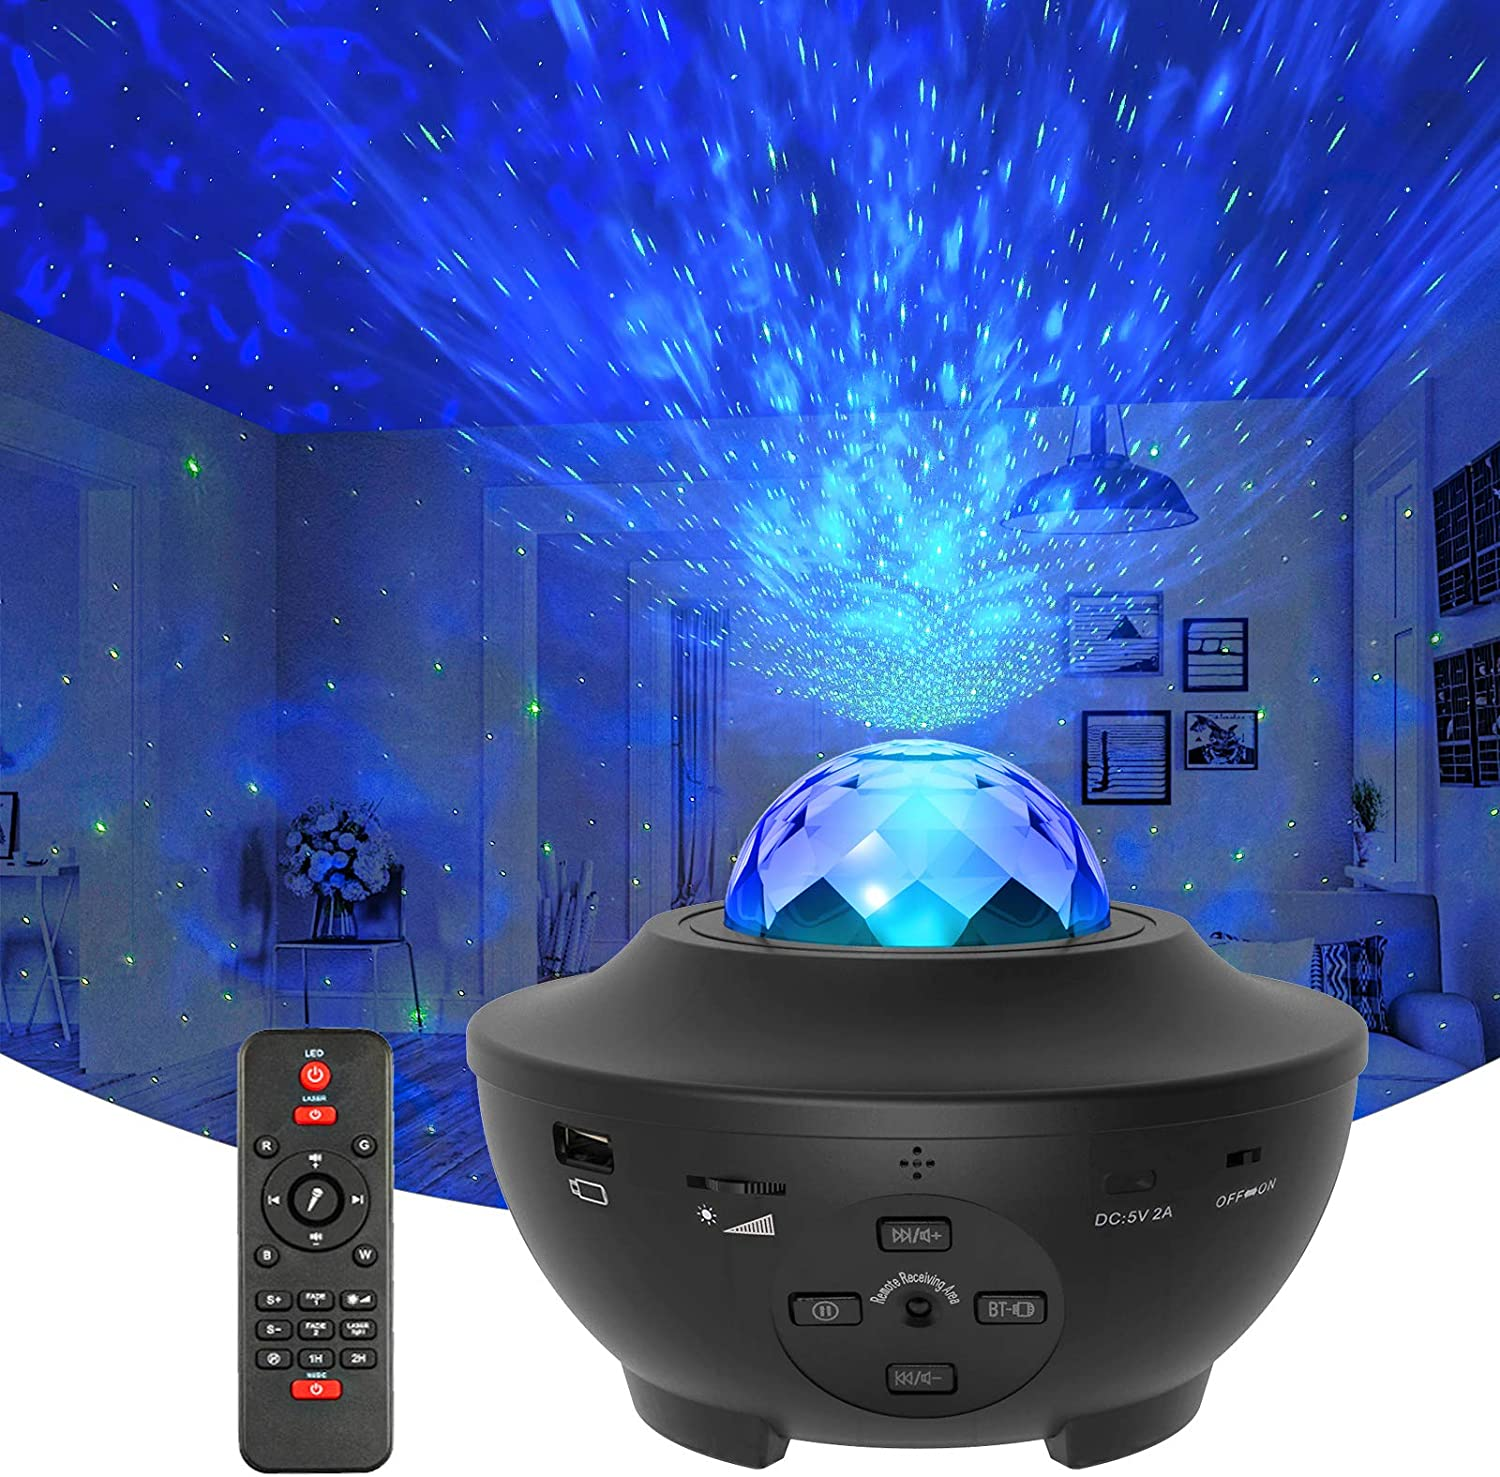 Stage Music Laser Light Remote Control and Voice Control Starlight Projector,Nebula Night Light Childrens Gift//Dating//Party//Home Theater Best Choice with Bluetooth Speaker